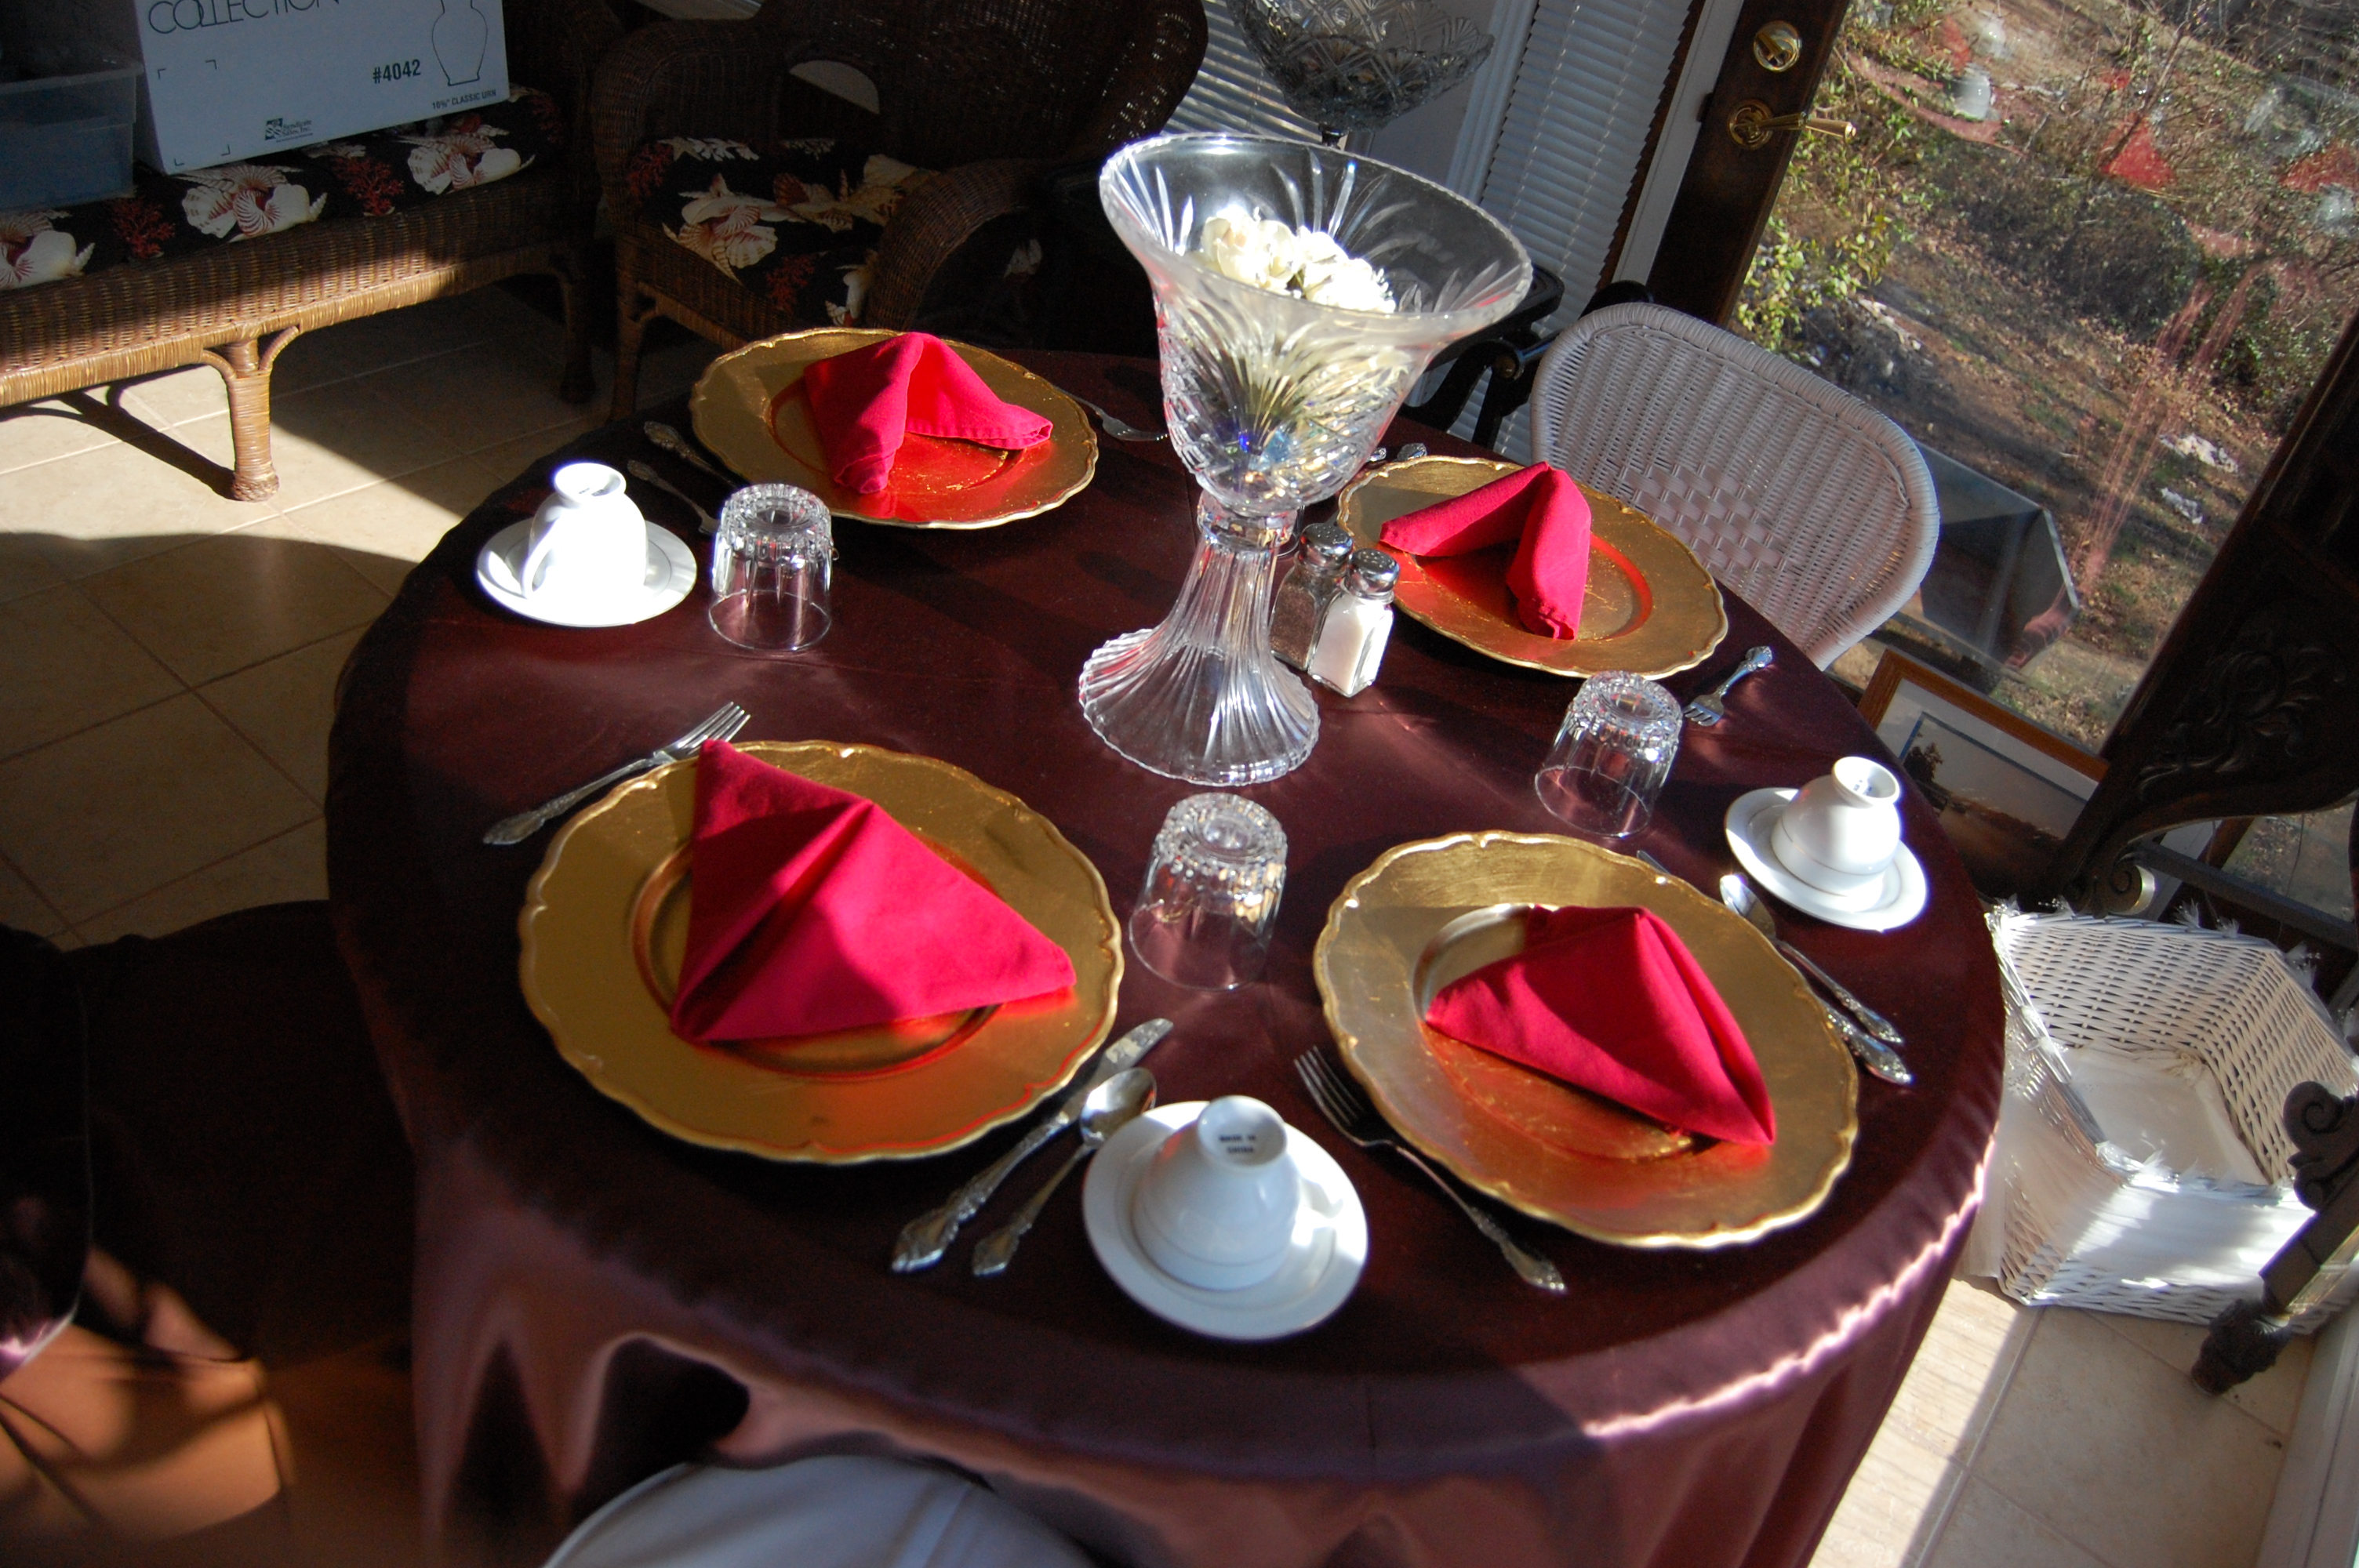 Dining table, Chairs, Dining, Dishes, Festive, HQ Photo